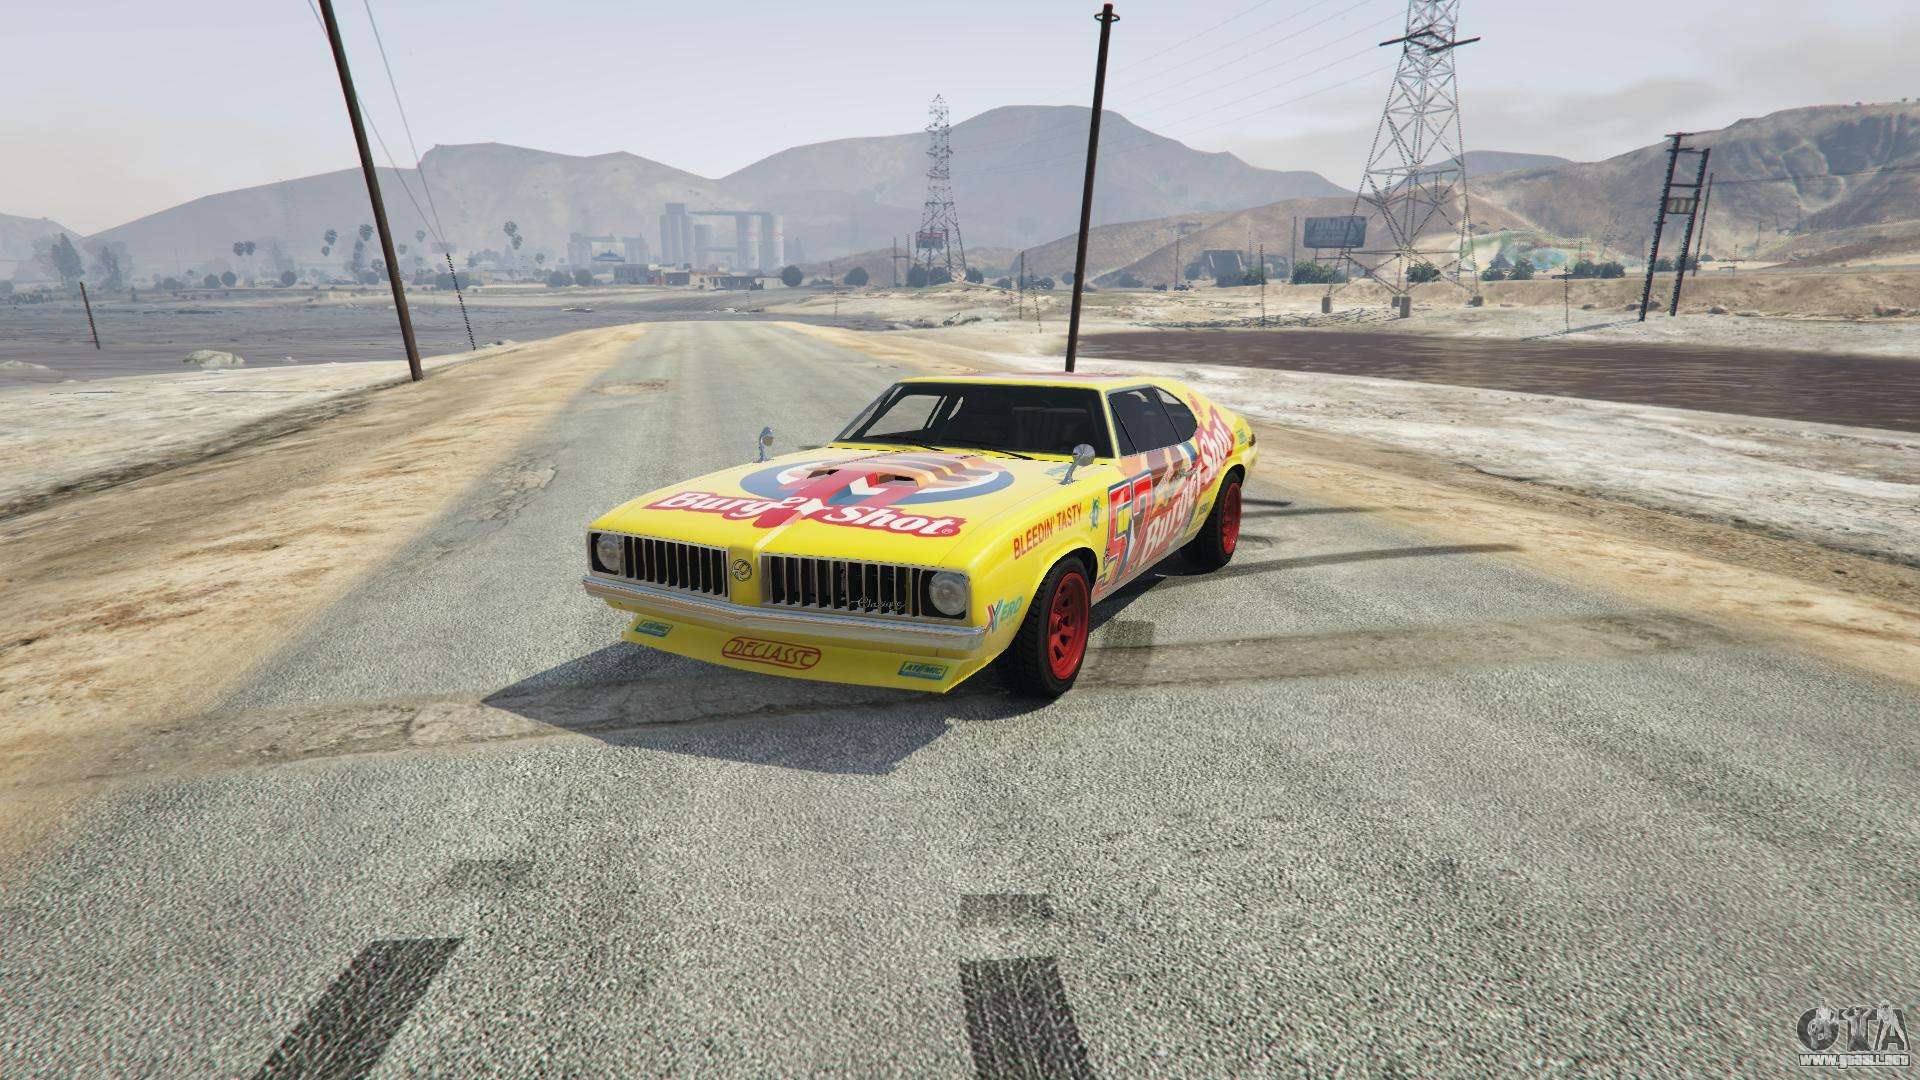 Burger Shot Stallion de GTA 5 - vista frontal